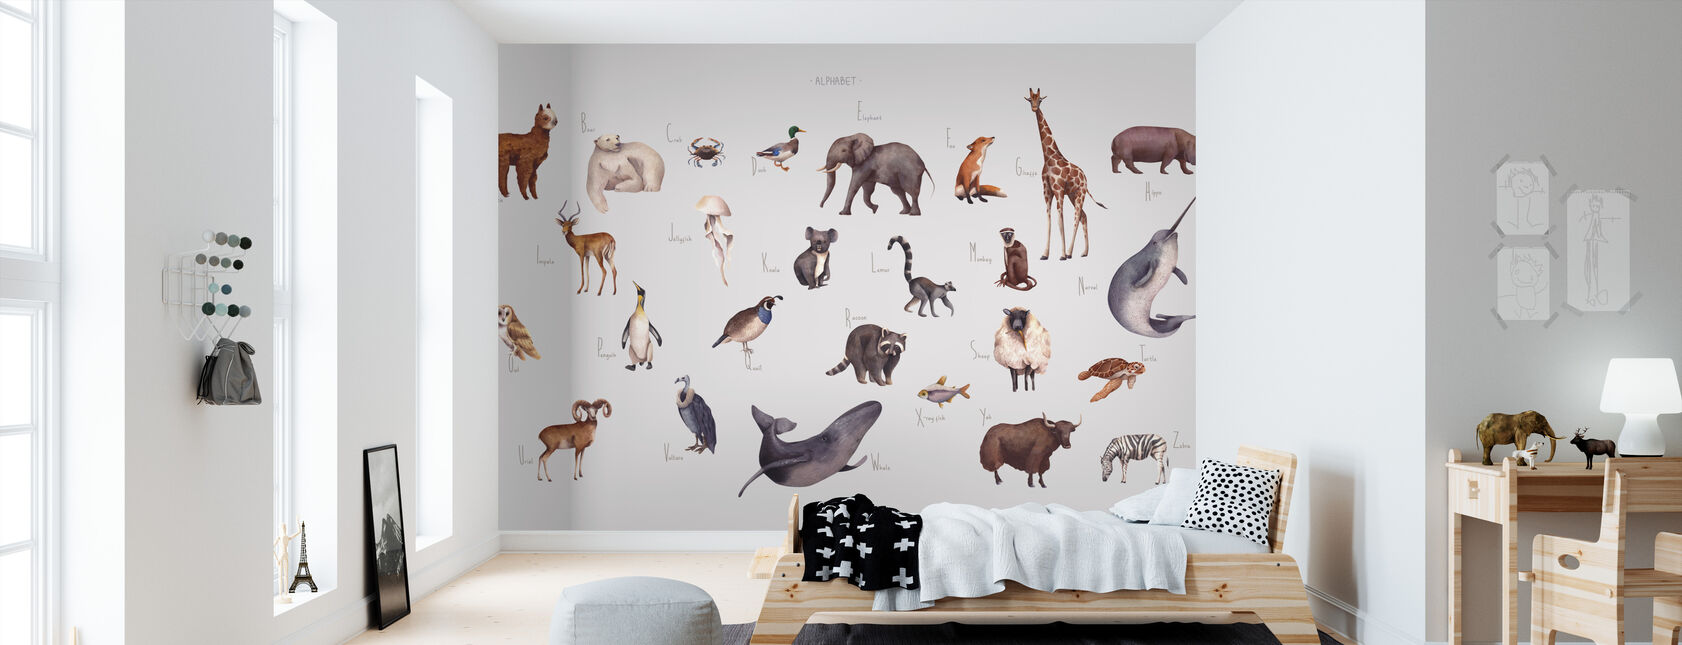 Animal Alphabet - Bright - Wallpaper - Kids Room